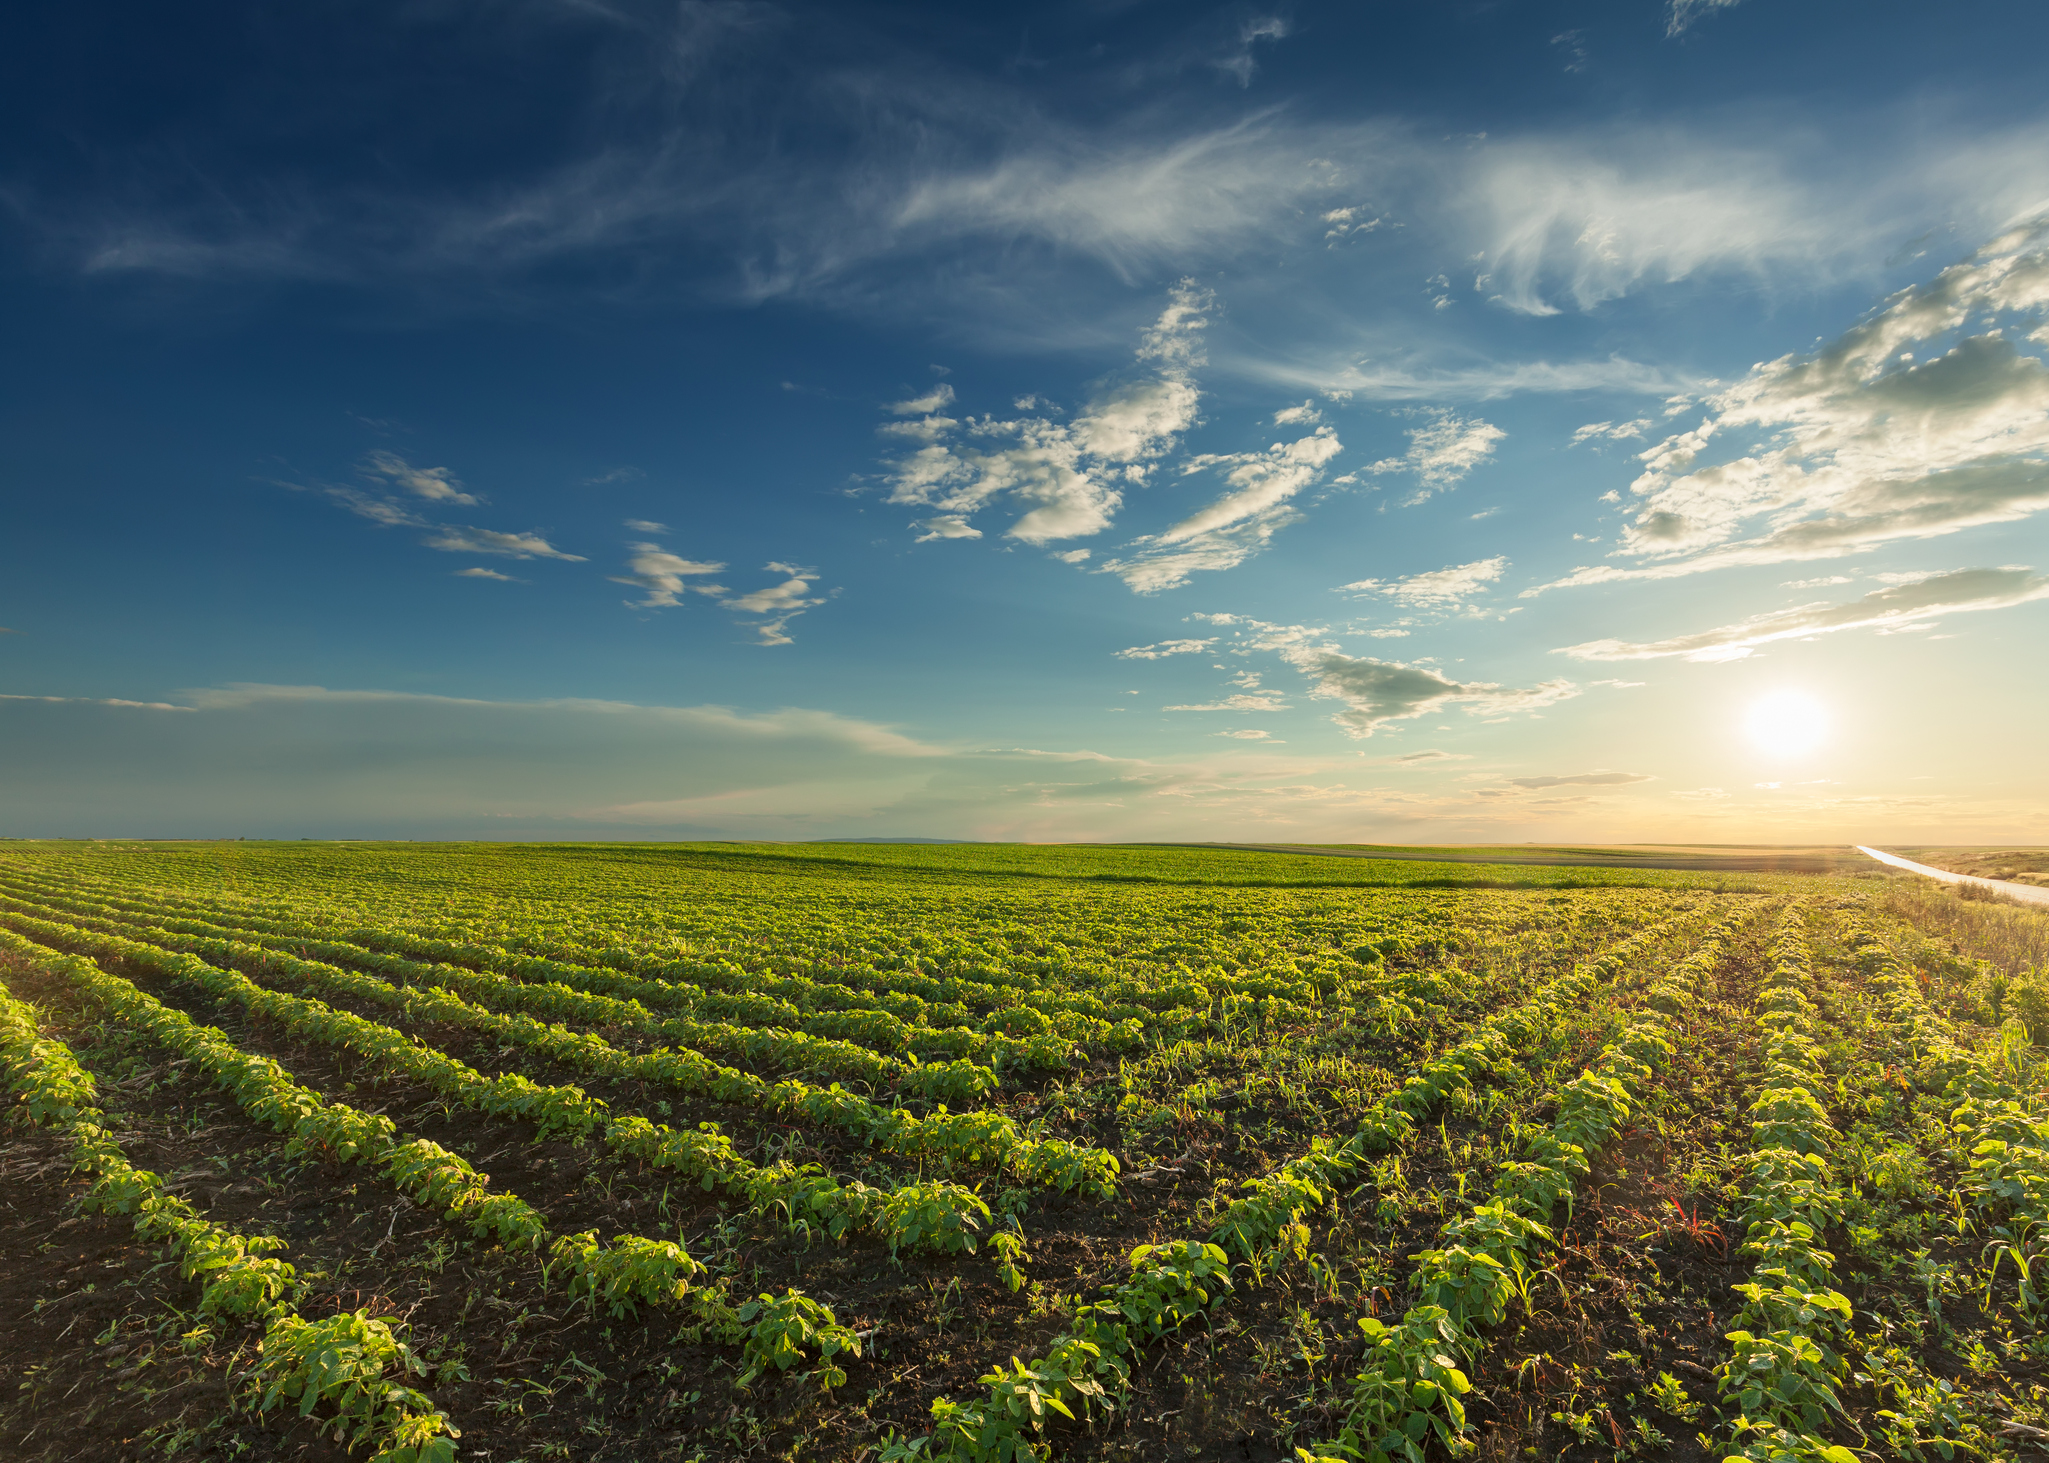 field of soybean row crops with wide open blue sky